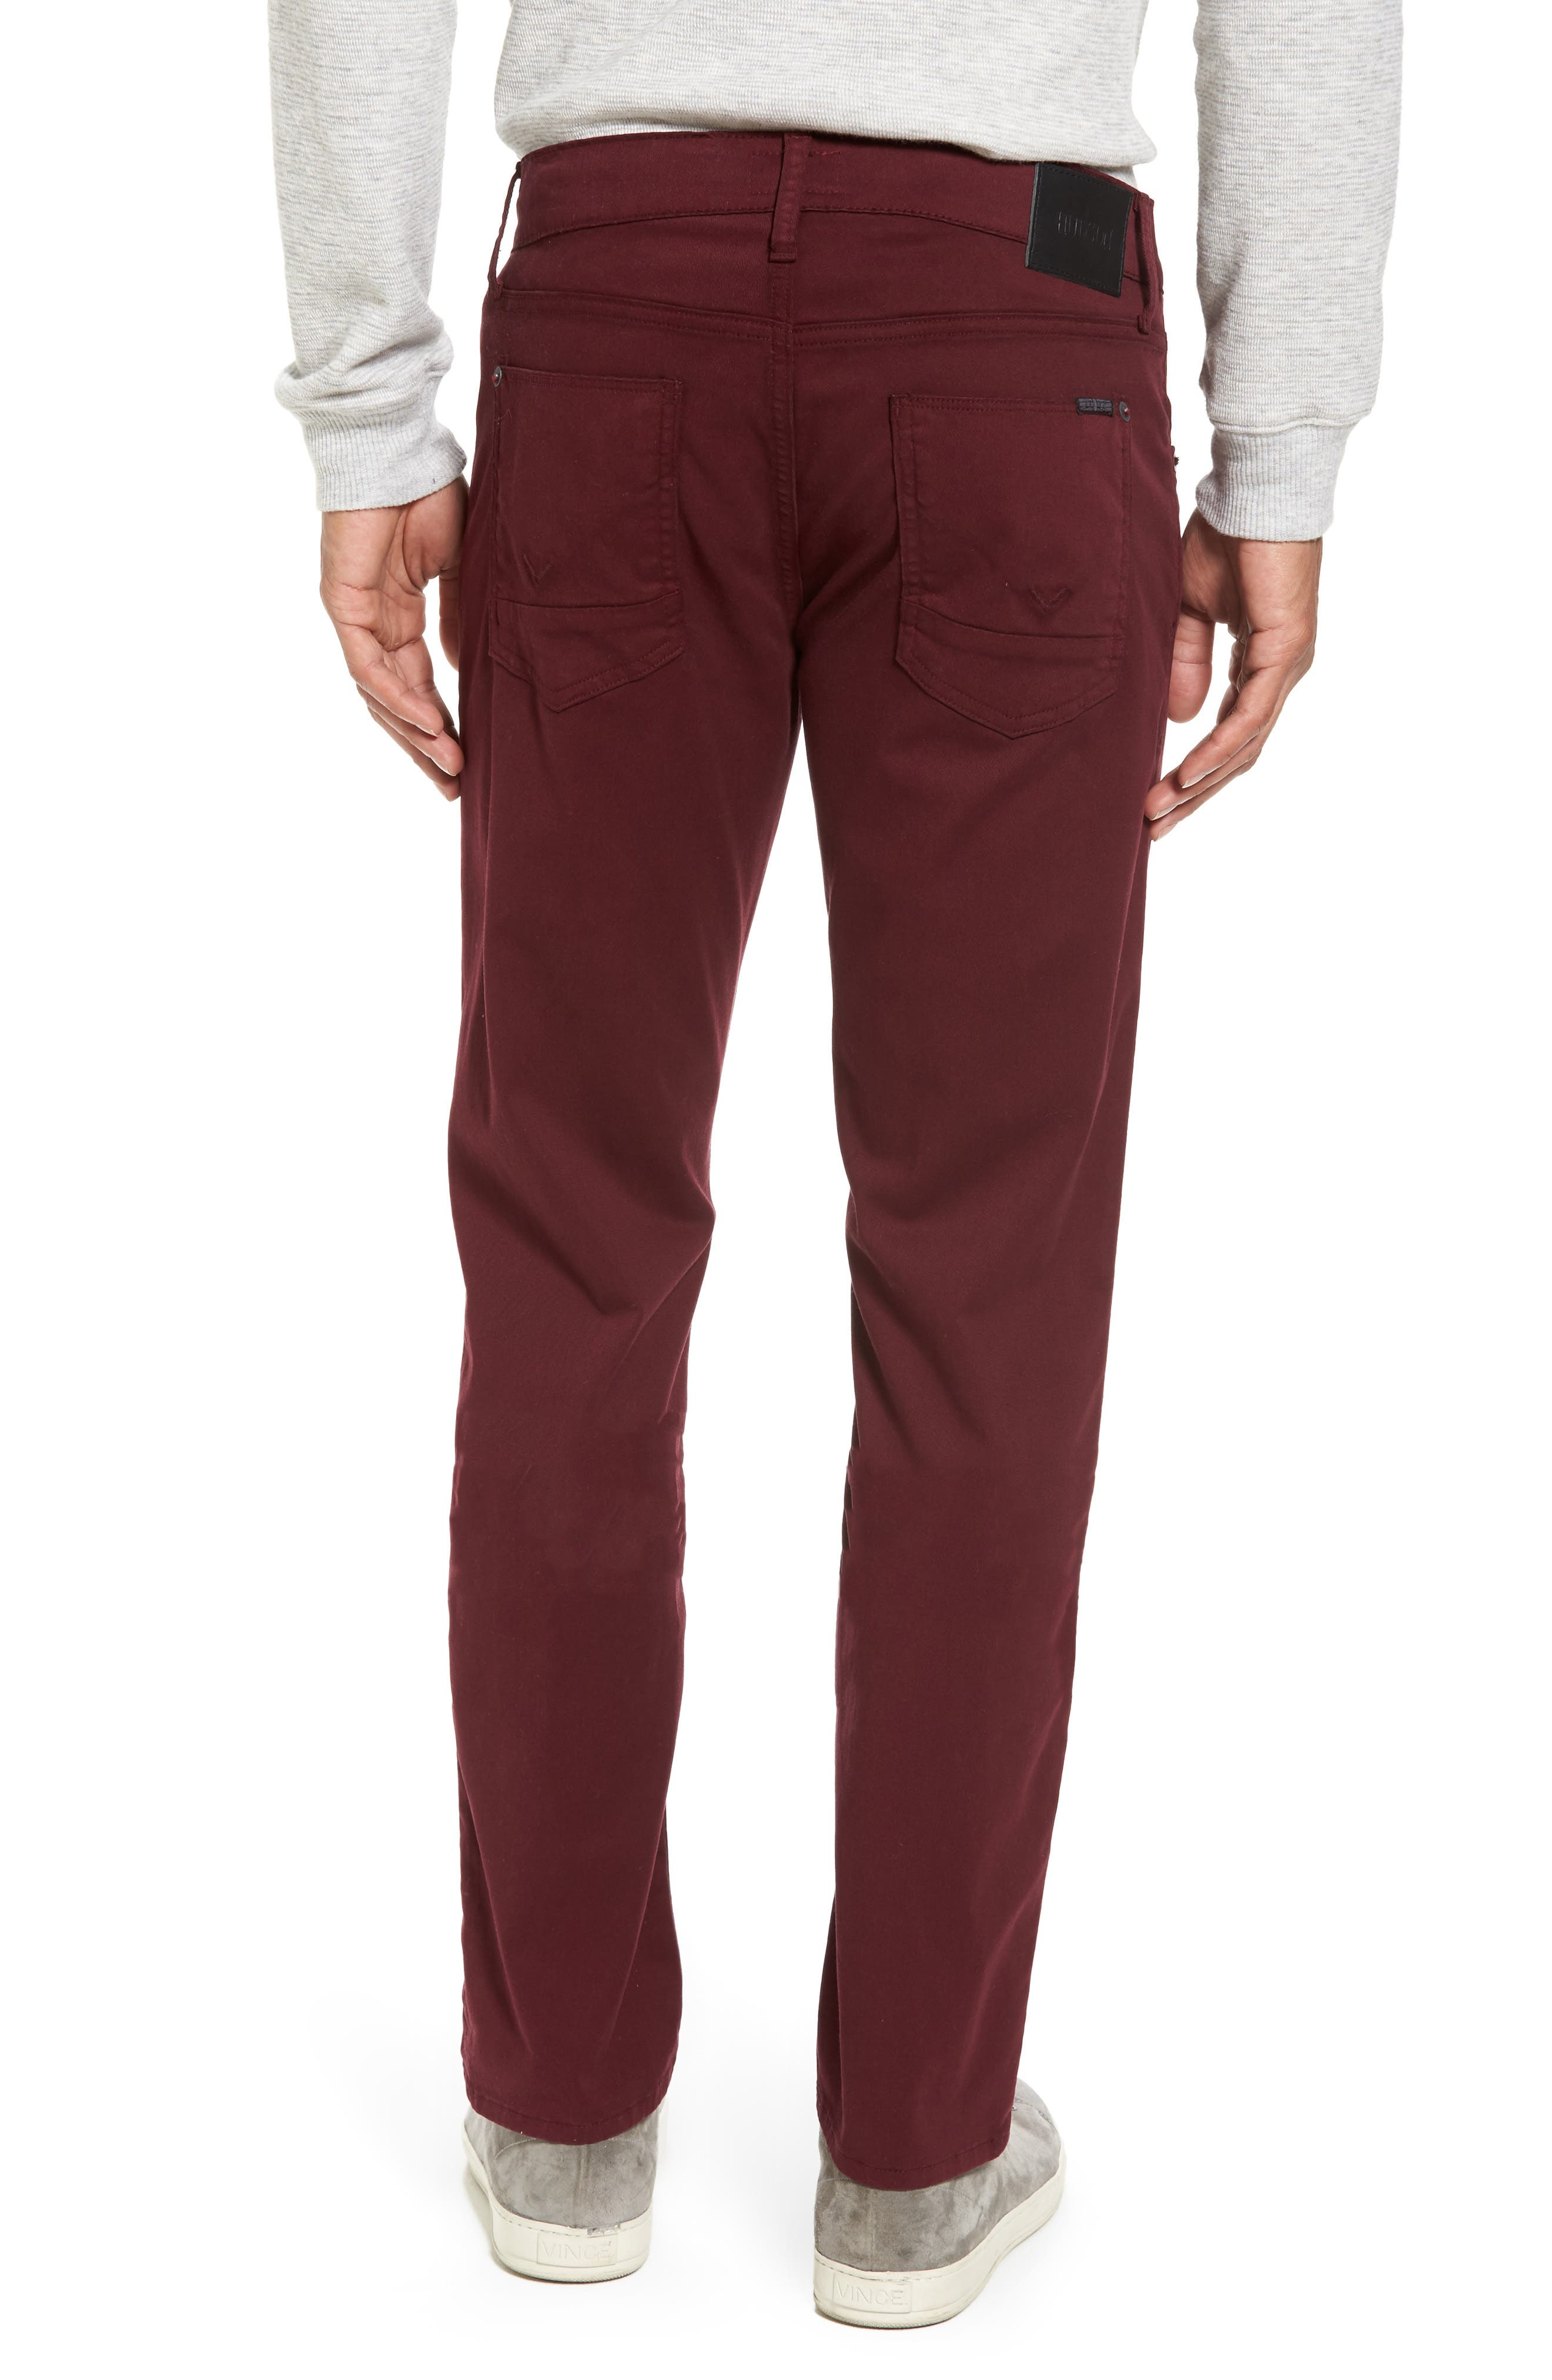 Blake Slim Fit Jeans,                             Alternate thumbnail 2, color,                             BURGUNDY